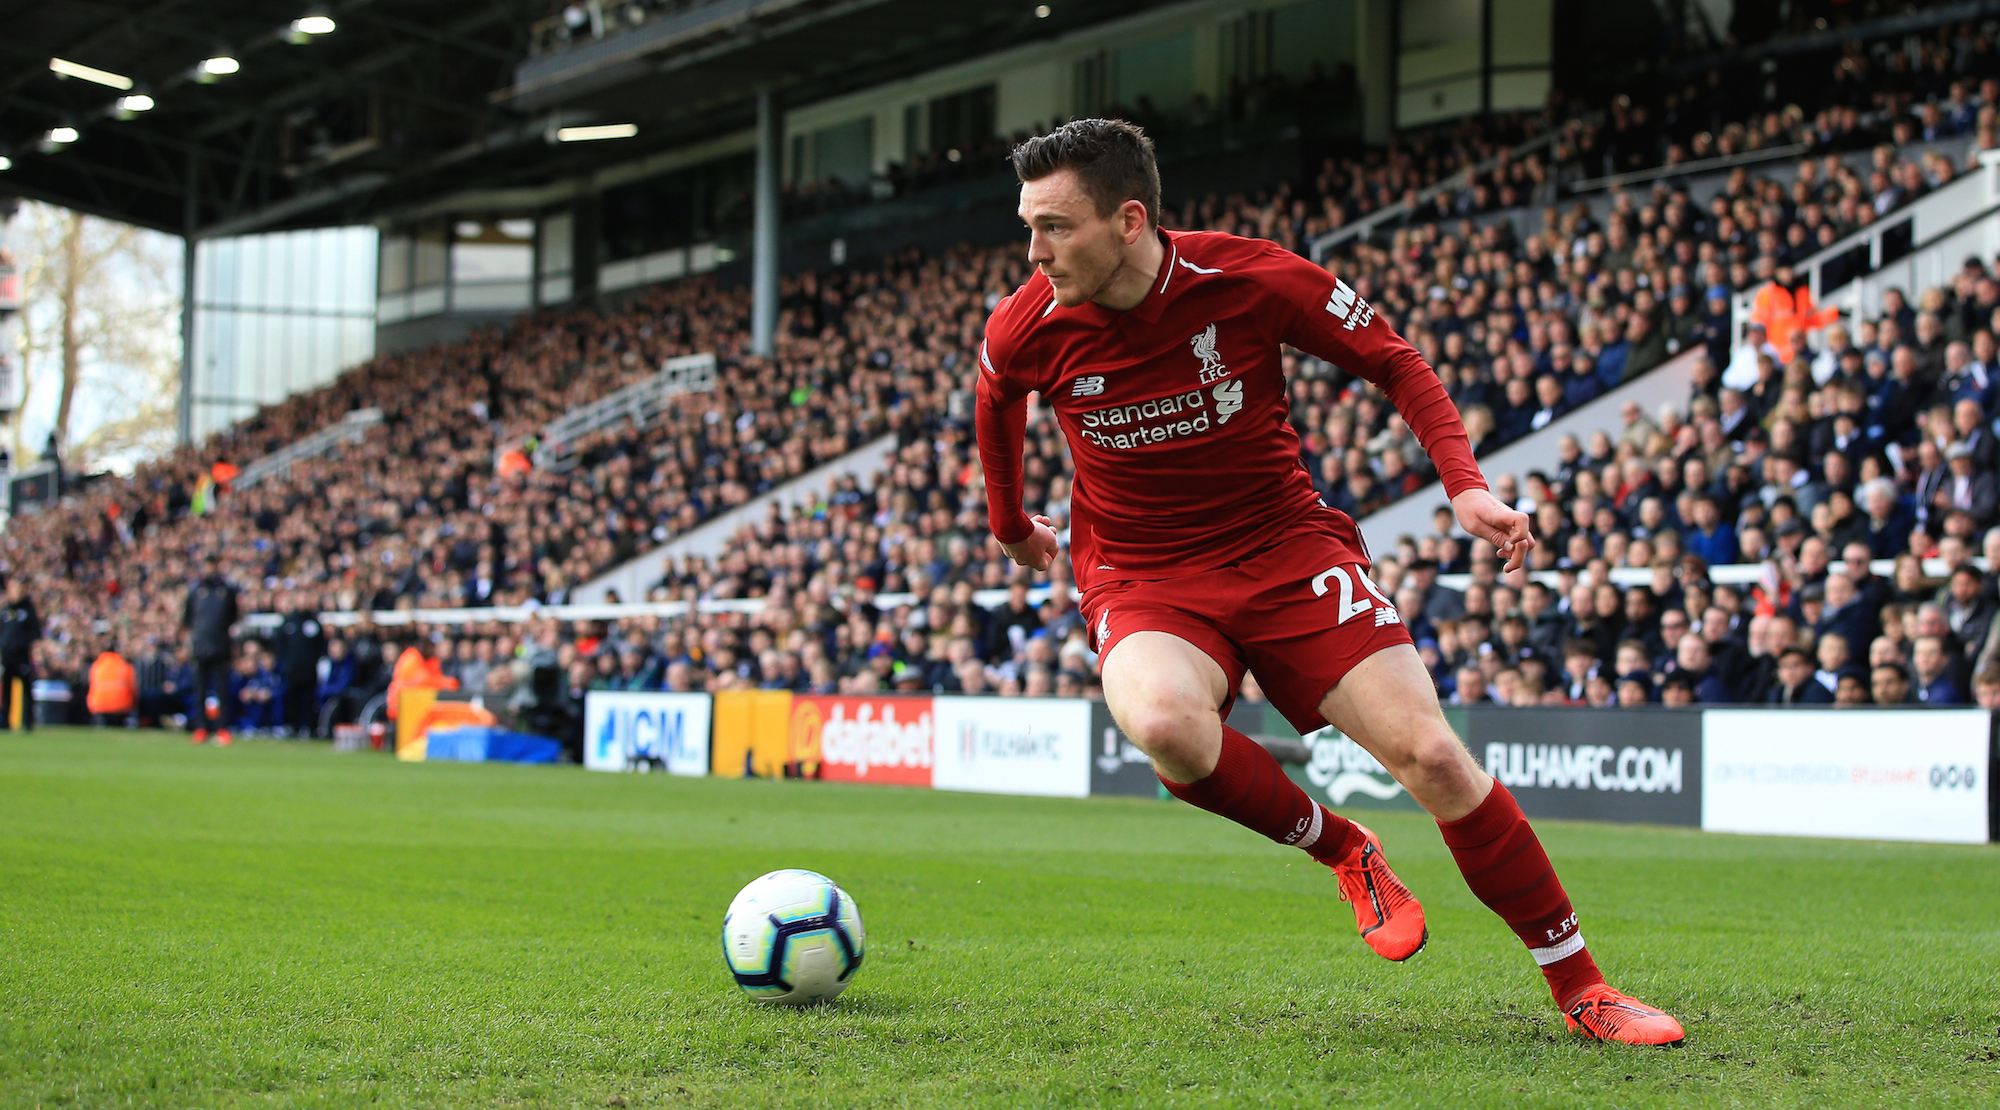 Andrew Robertson of Liverpool during the Premier League match between Fulham FC and Liverpool FC at Craven Cottage on March 17, 2019 in London, United Kingdom. (Photo by Marc Atkins/Getty Images)